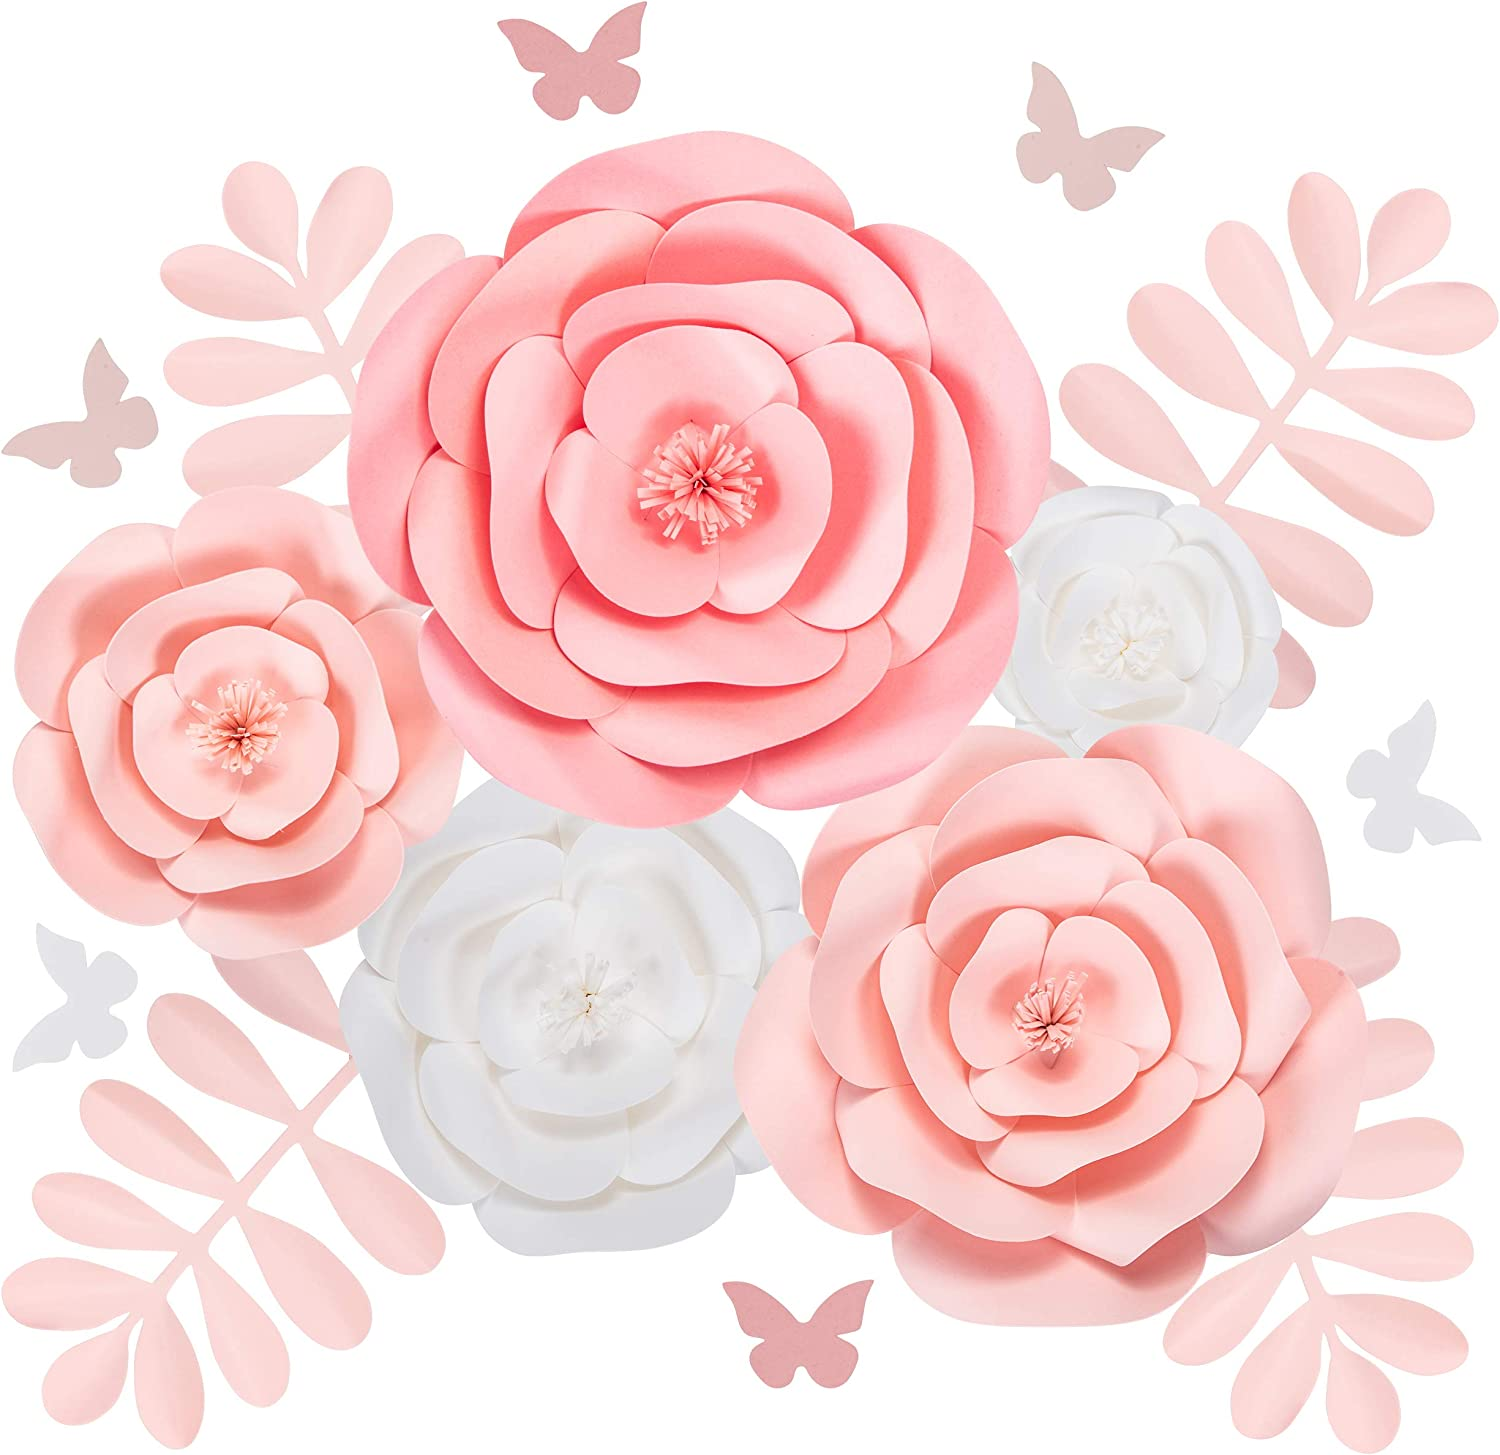 Rainbows & Lilies Large 3D Paper Flowers Decorations for Wall, Wedding, Bridal Shower, Baby Shower, Nursery Decor, Centerpieces, Flower Backdrop, Party, 15-Pieces, Handmade & Assembled (Pink, White)